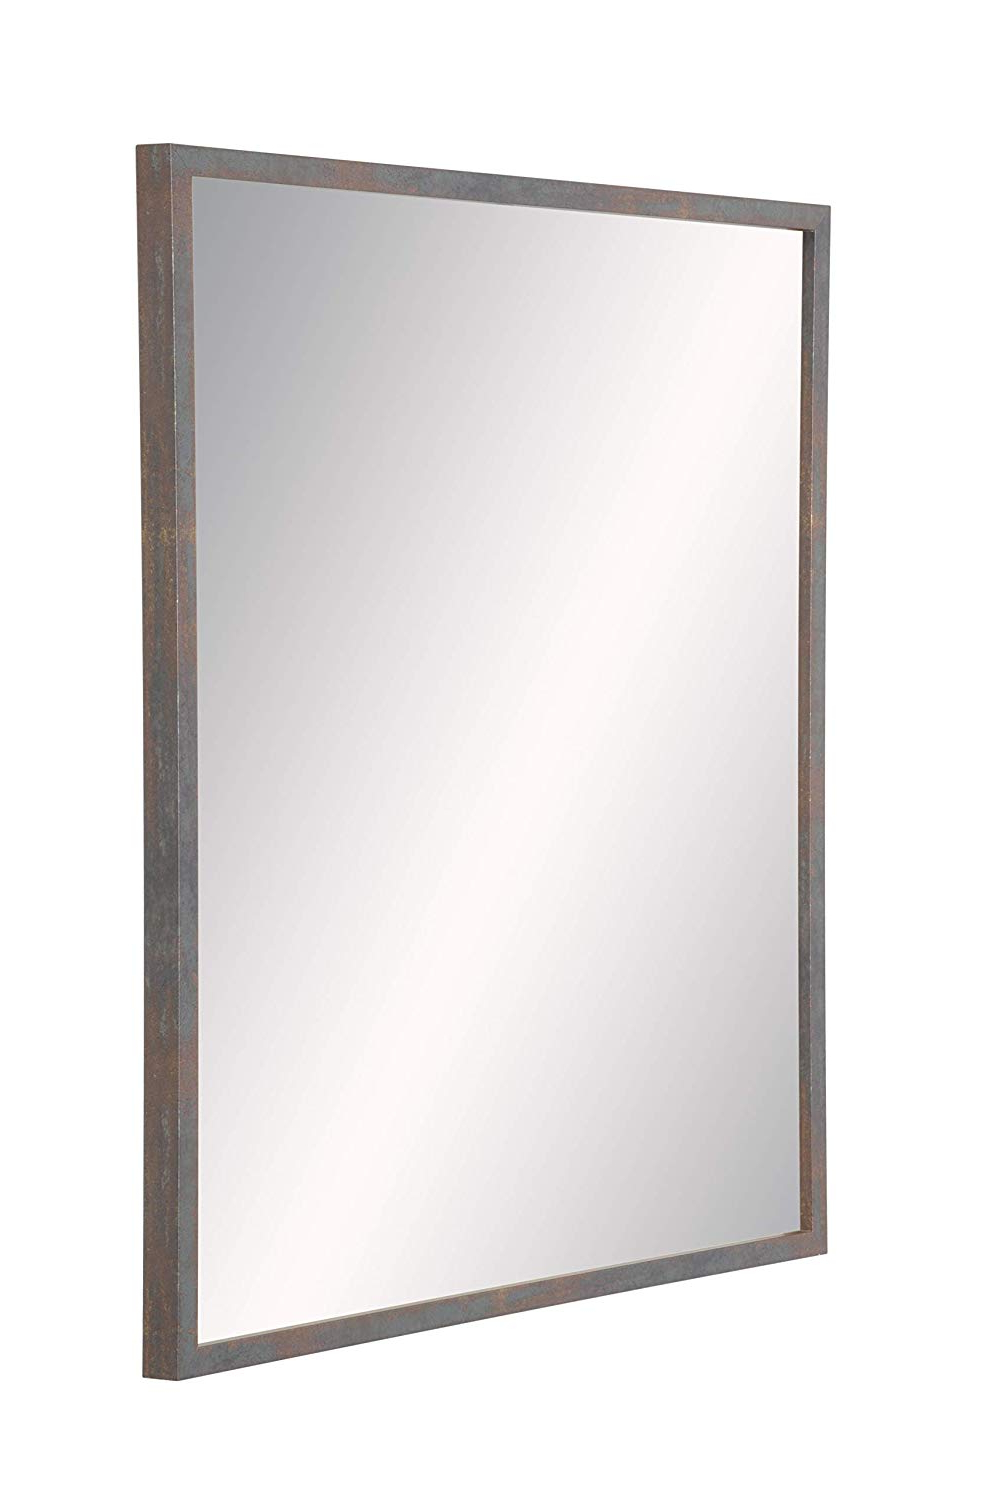 Most Up To Date Elevate Wall Mirrors Within Amazon: Brandtworks Modern Industrial Wall Mirror: Home (Gallery 7 of 20)